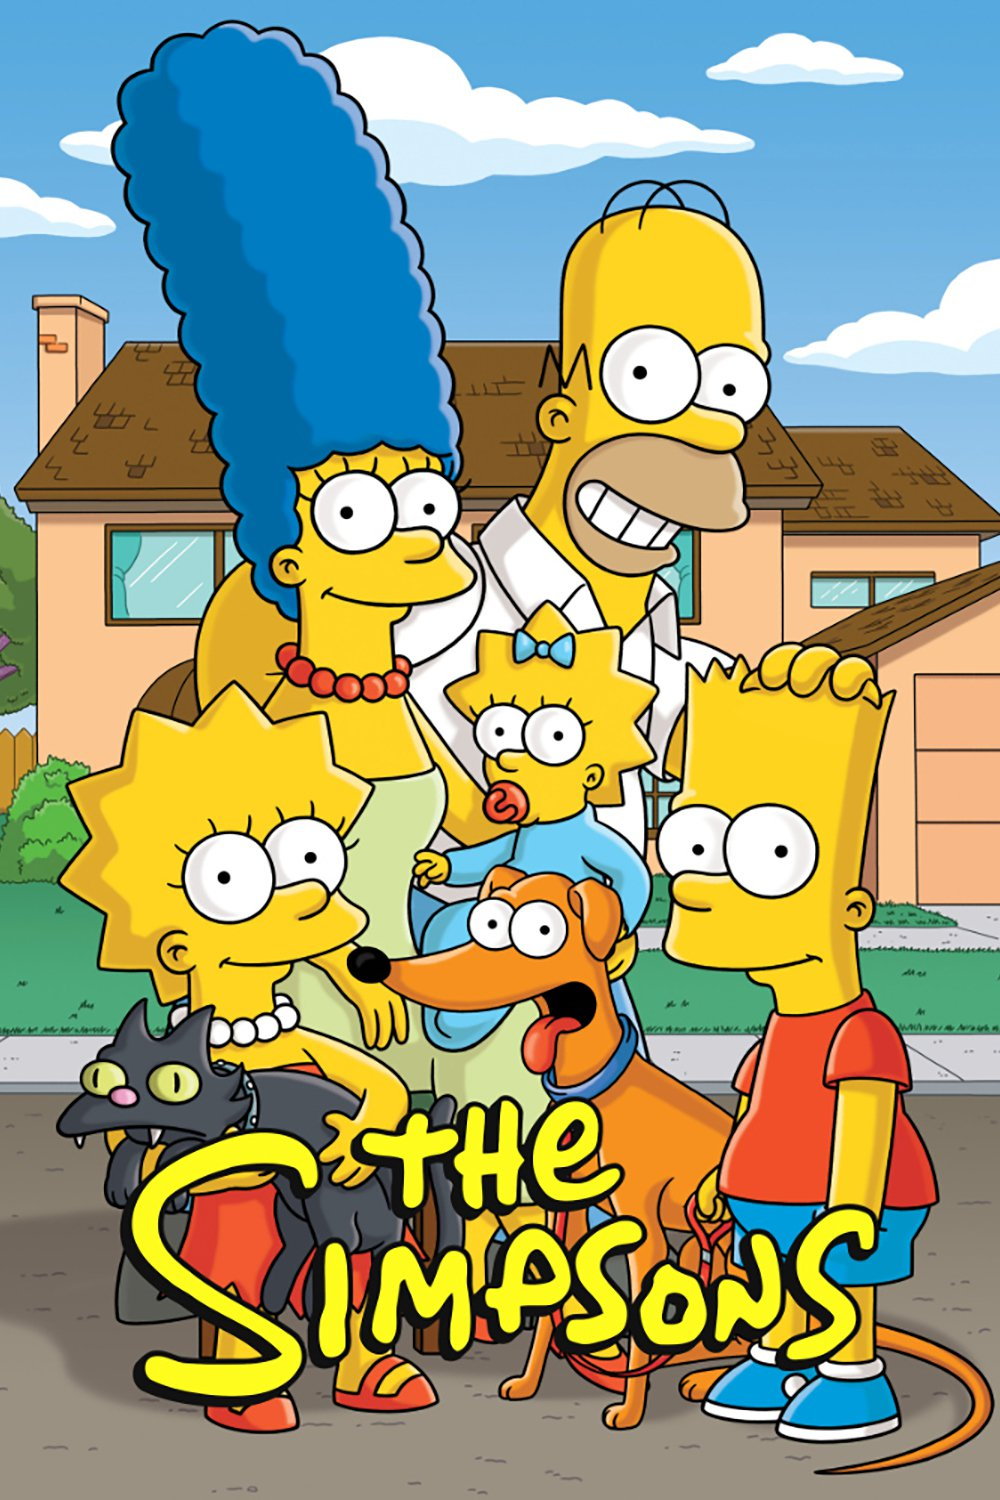 Temporada de los simpsons 25 latino dating